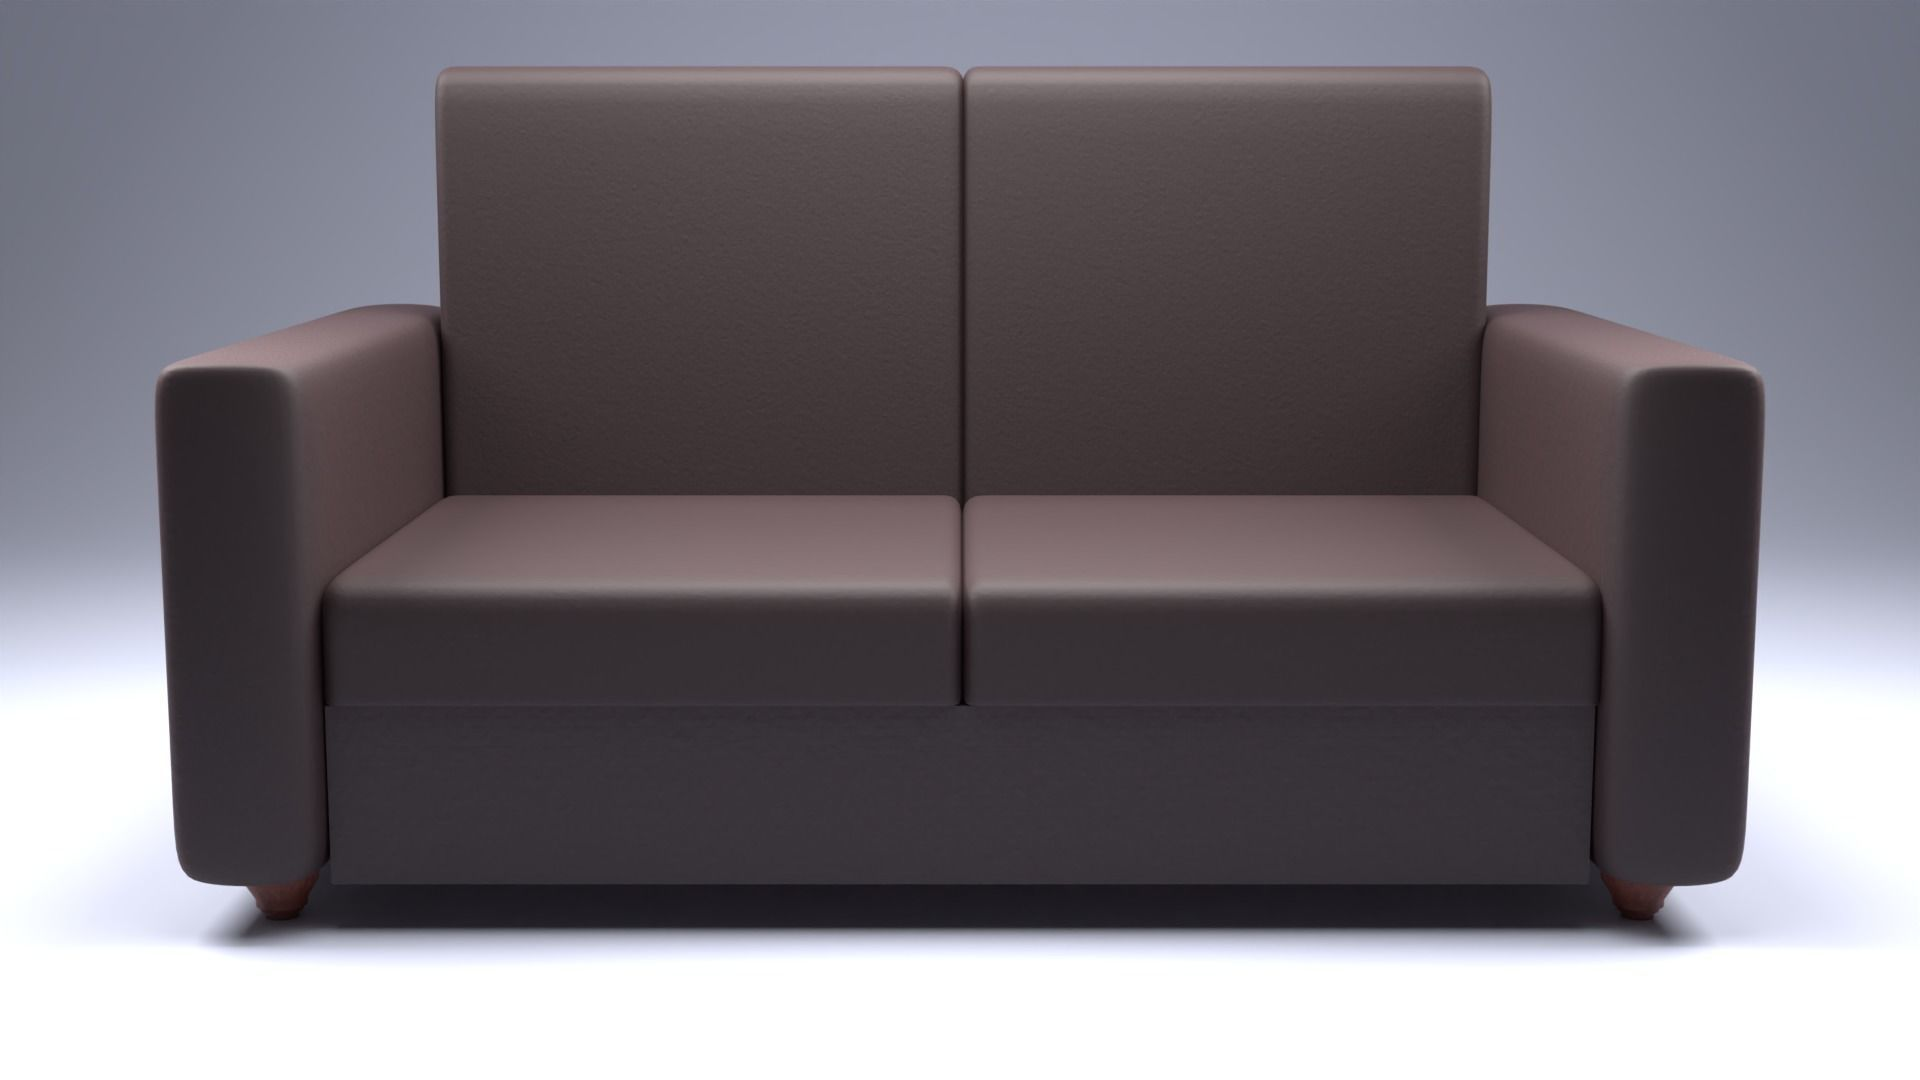 3D model Sofa Set with PBR Textures 4 | CGTrader